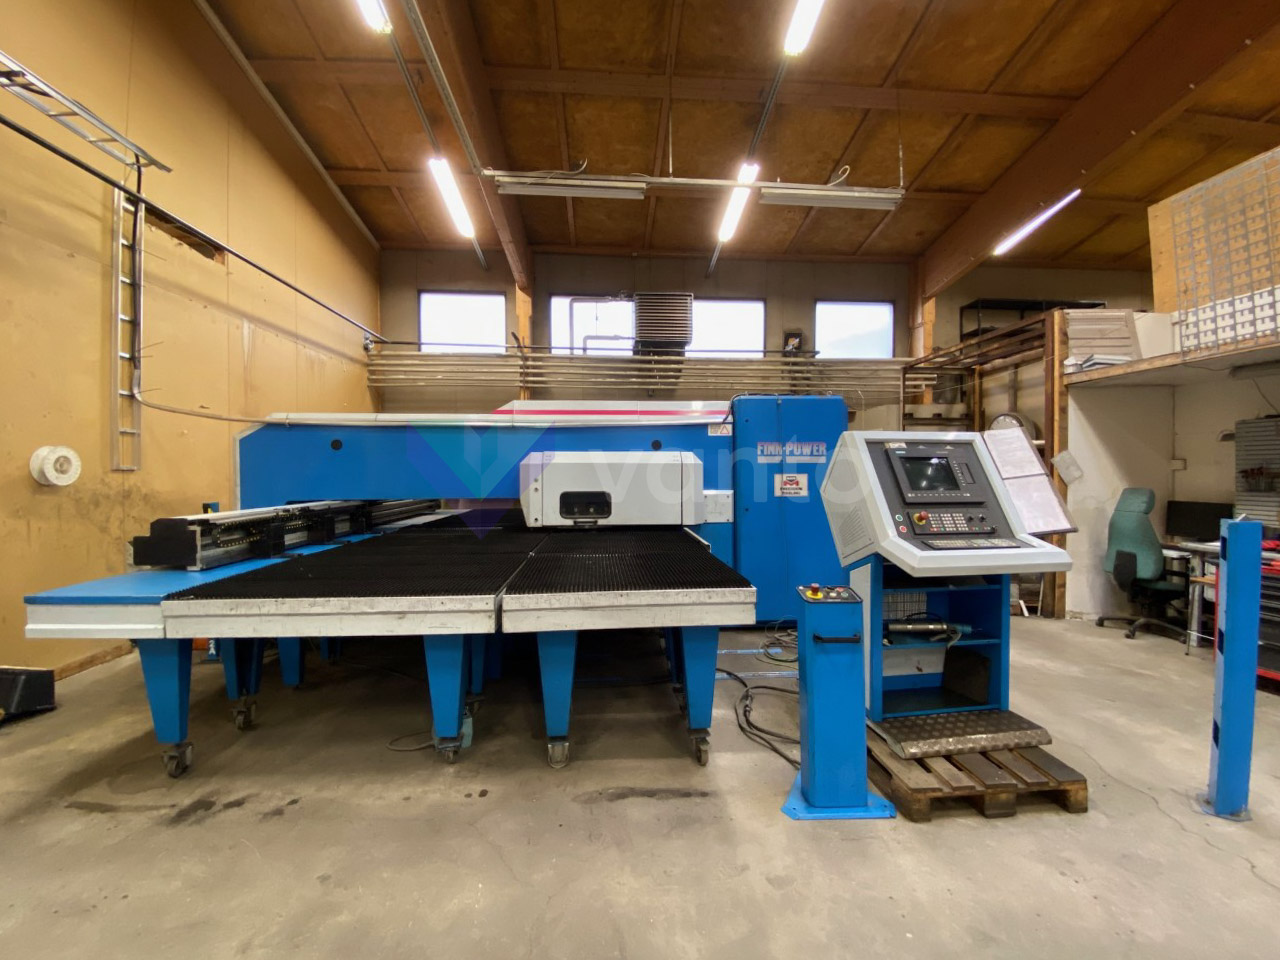 CNC delme makinesi FINN POWER A5 20 (1997) id10463